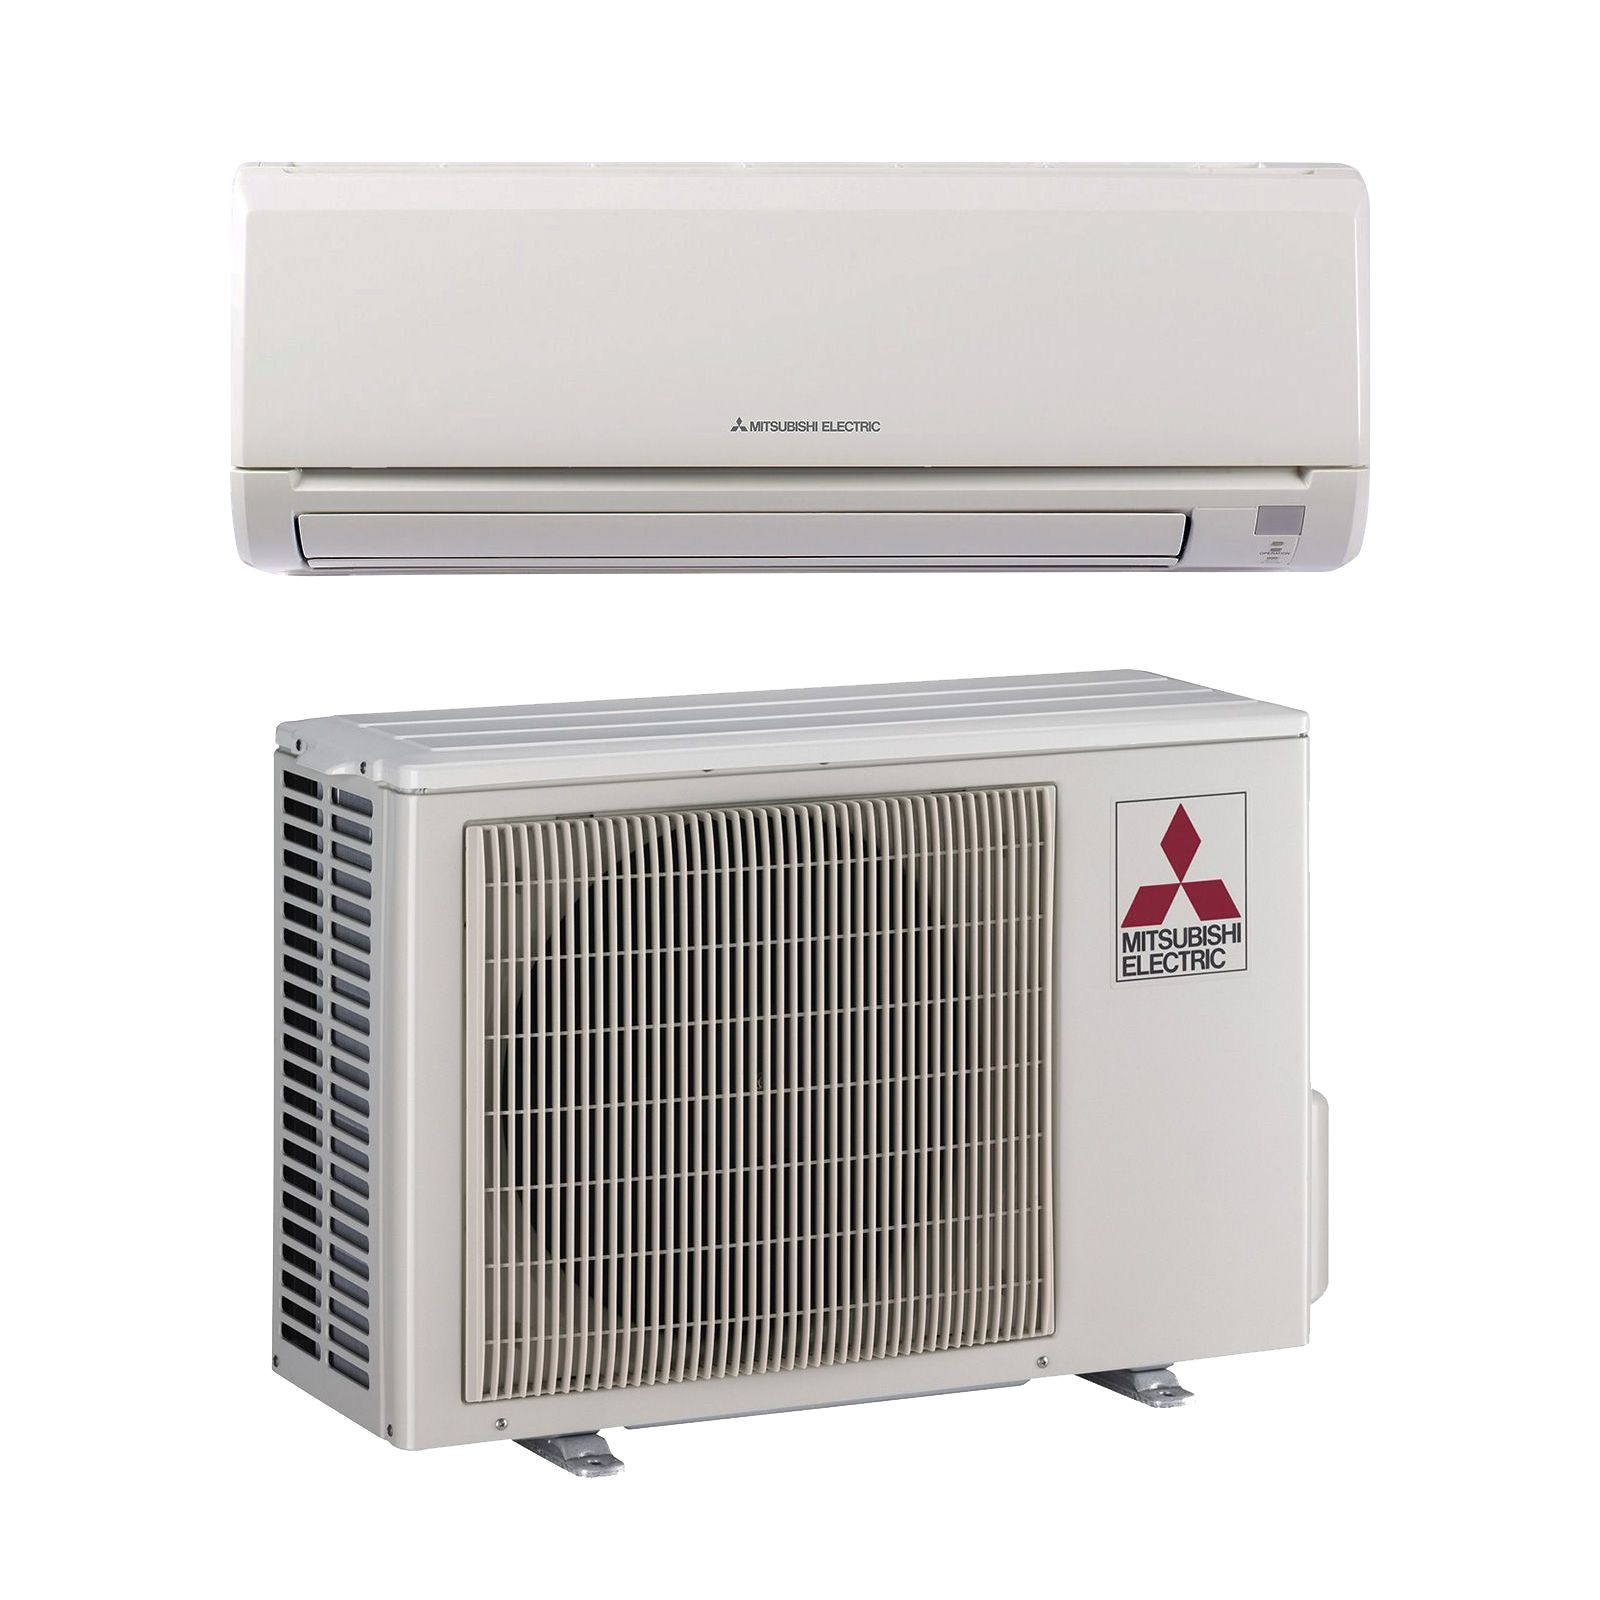 hei conditioner mr seer article fit wall wid en my air ductless inverter mini normal slim btu split mount only constrain mitsubishi